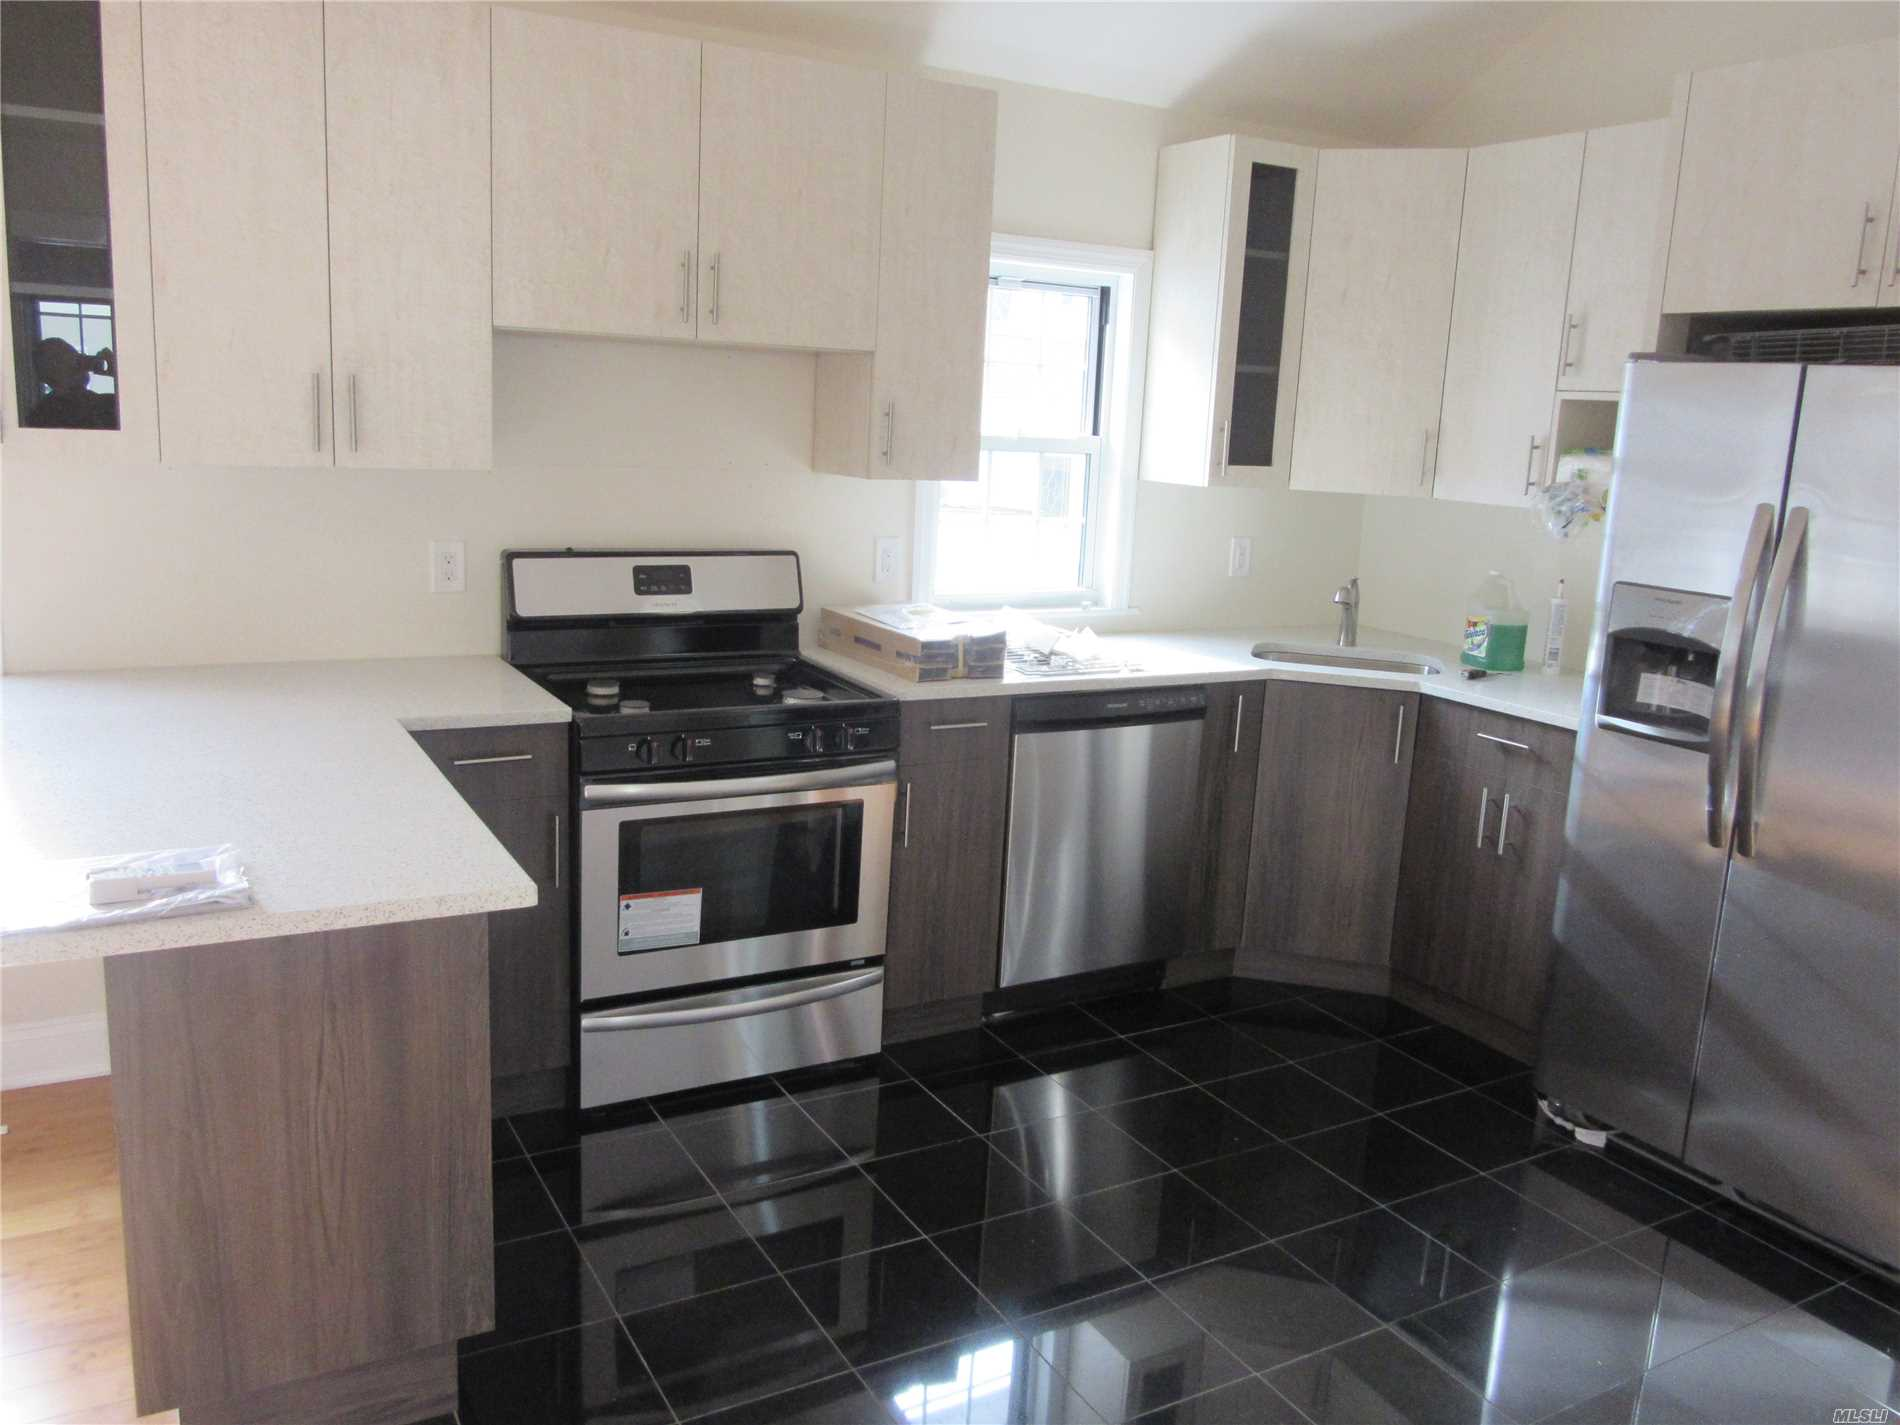 Fully Renovated Single Family Home. Beautiful Floors, Brand New Modern Kitchen. 3 Bedrooms And 2 Bathrooms, Central A/C, High Ceilings With Spotlights. Basement Is Fully Finished With Separate Entrance. Spacious Driveway With Big Garage.